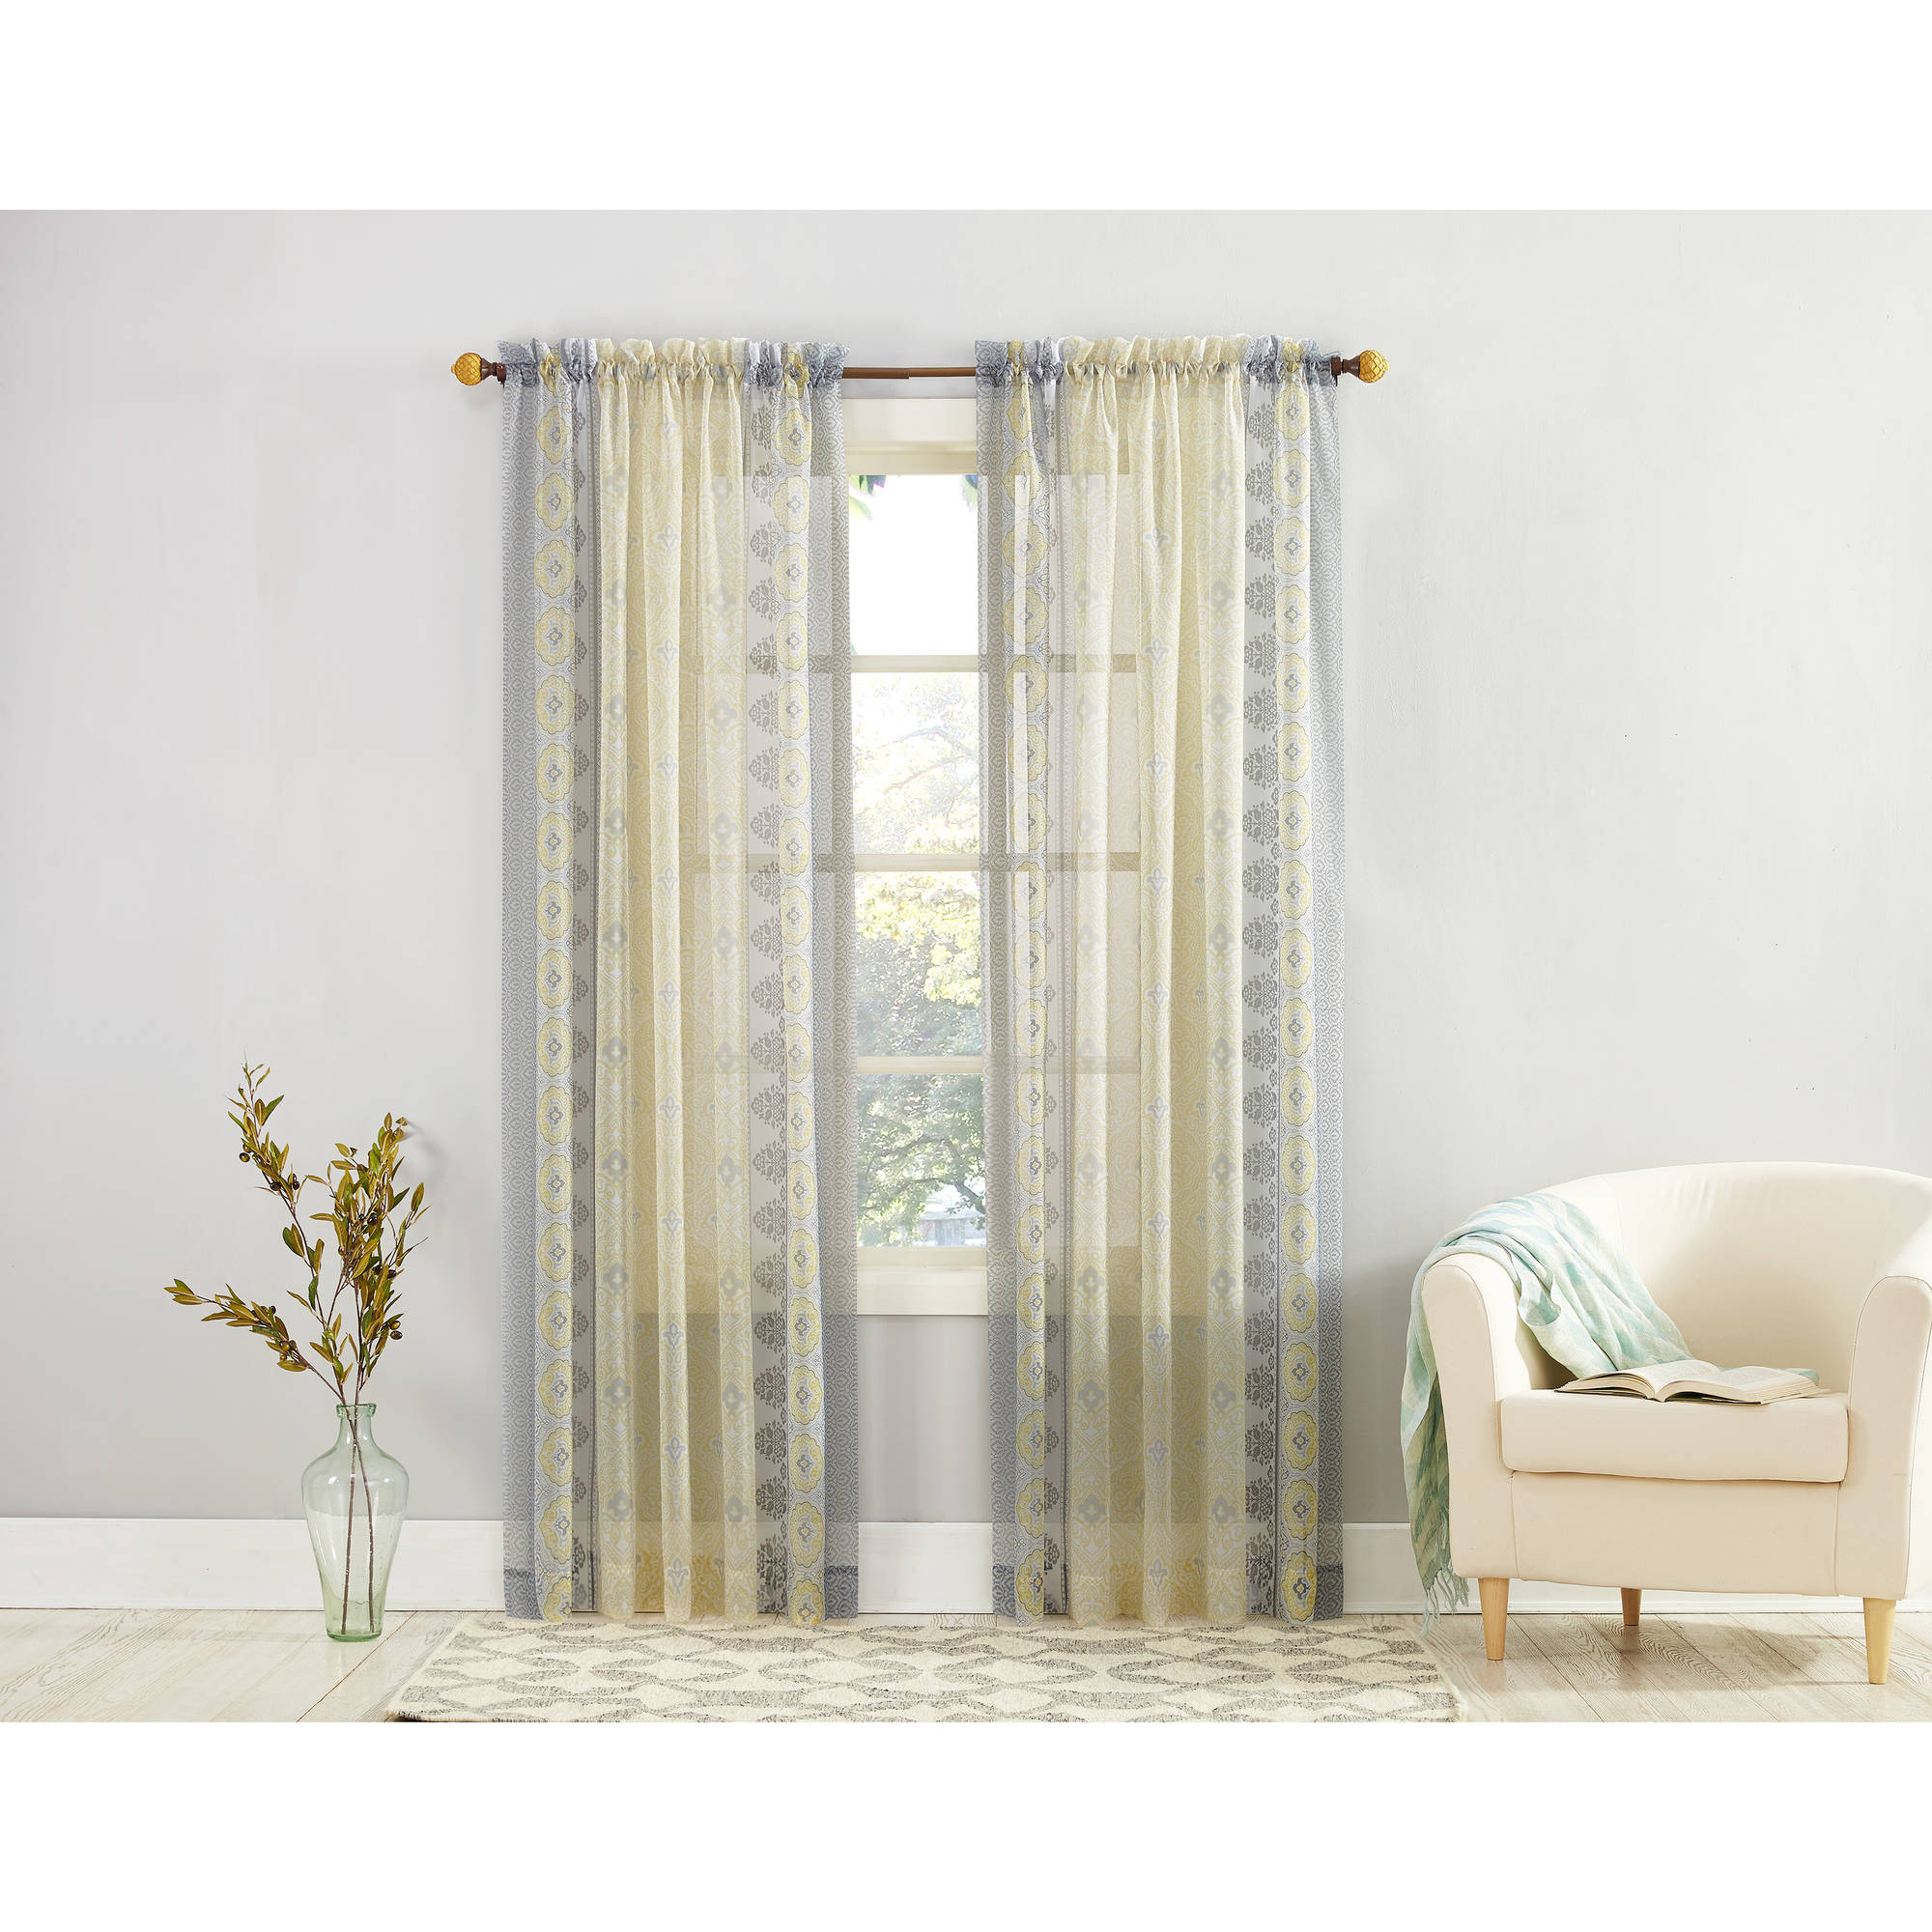 Walmart lime green curtains - Walmart Lime Green Curtains 14